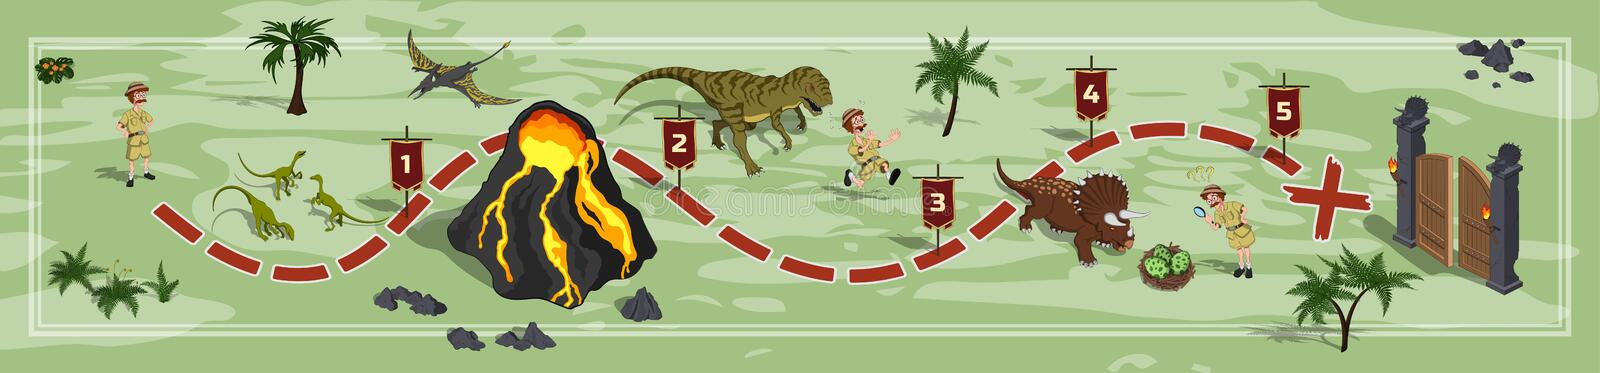 Dinosaurs world map in cartoon style. Landscape with a path image. Adventure in dino park in isometric style. Board maze stock illustration